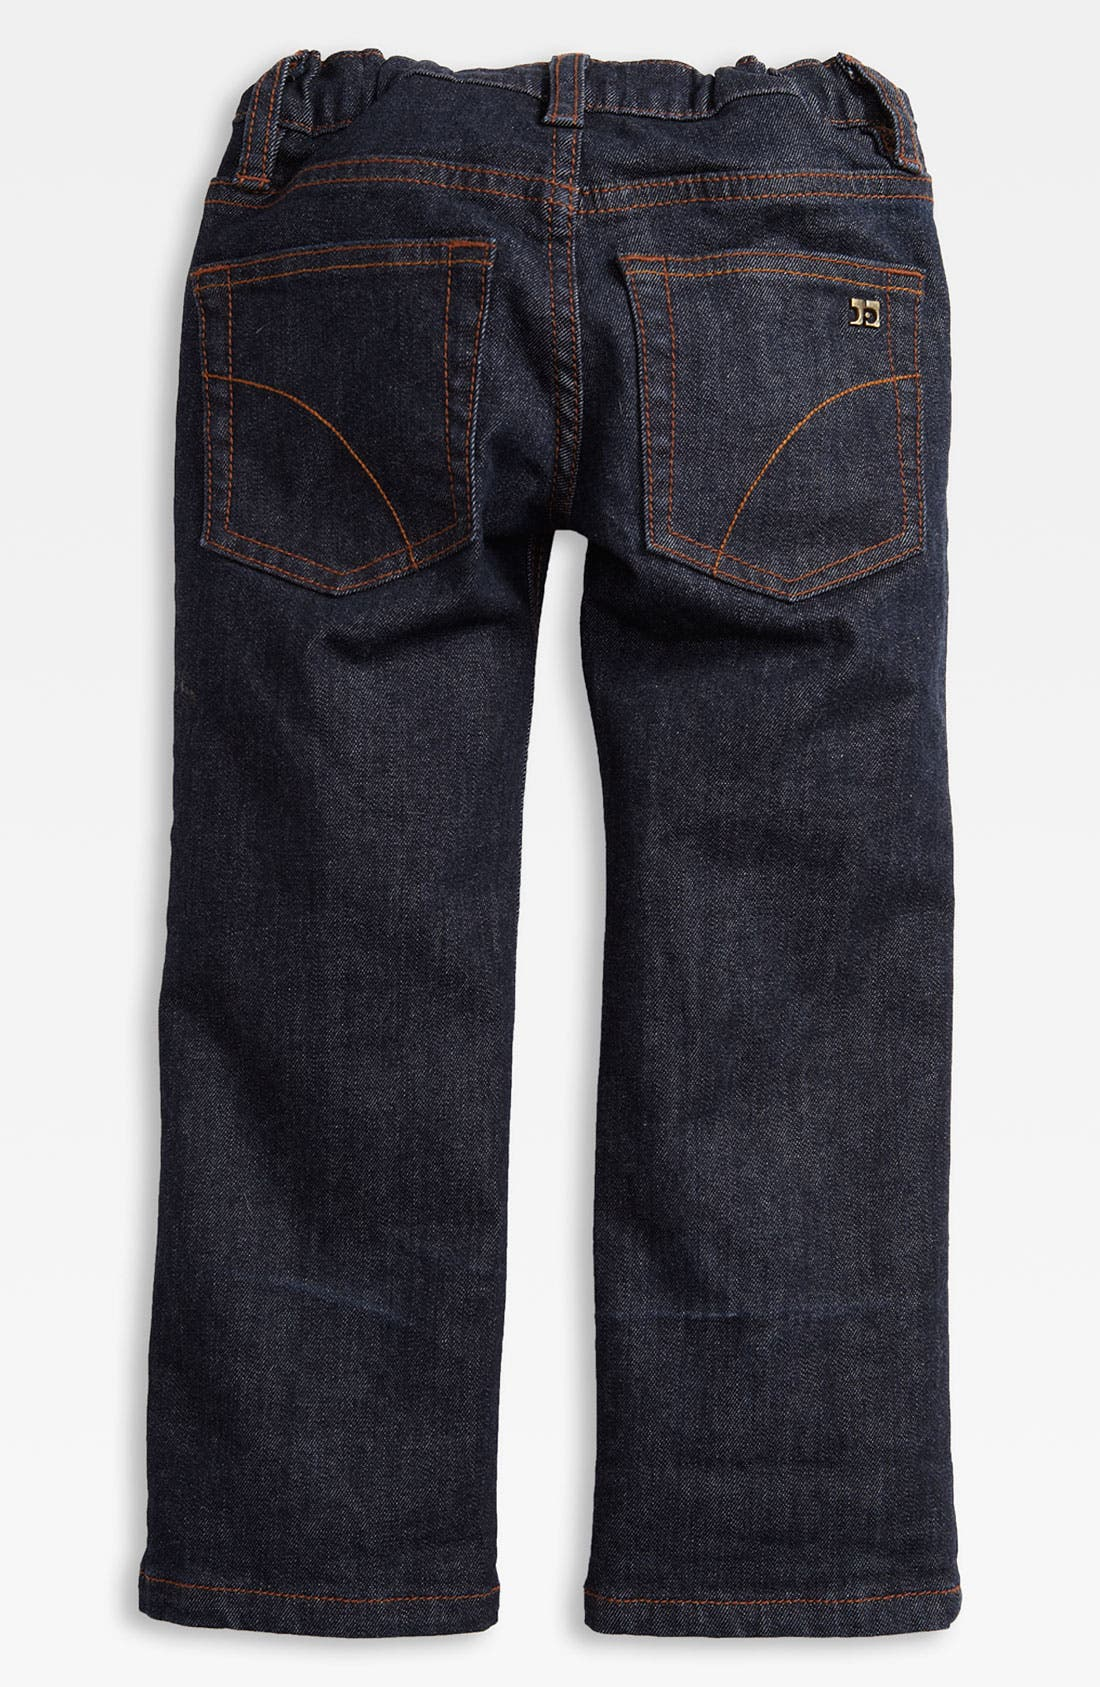 Alternate Image 1 Selected - Joe's 'Brixton' Jeans (Infant)